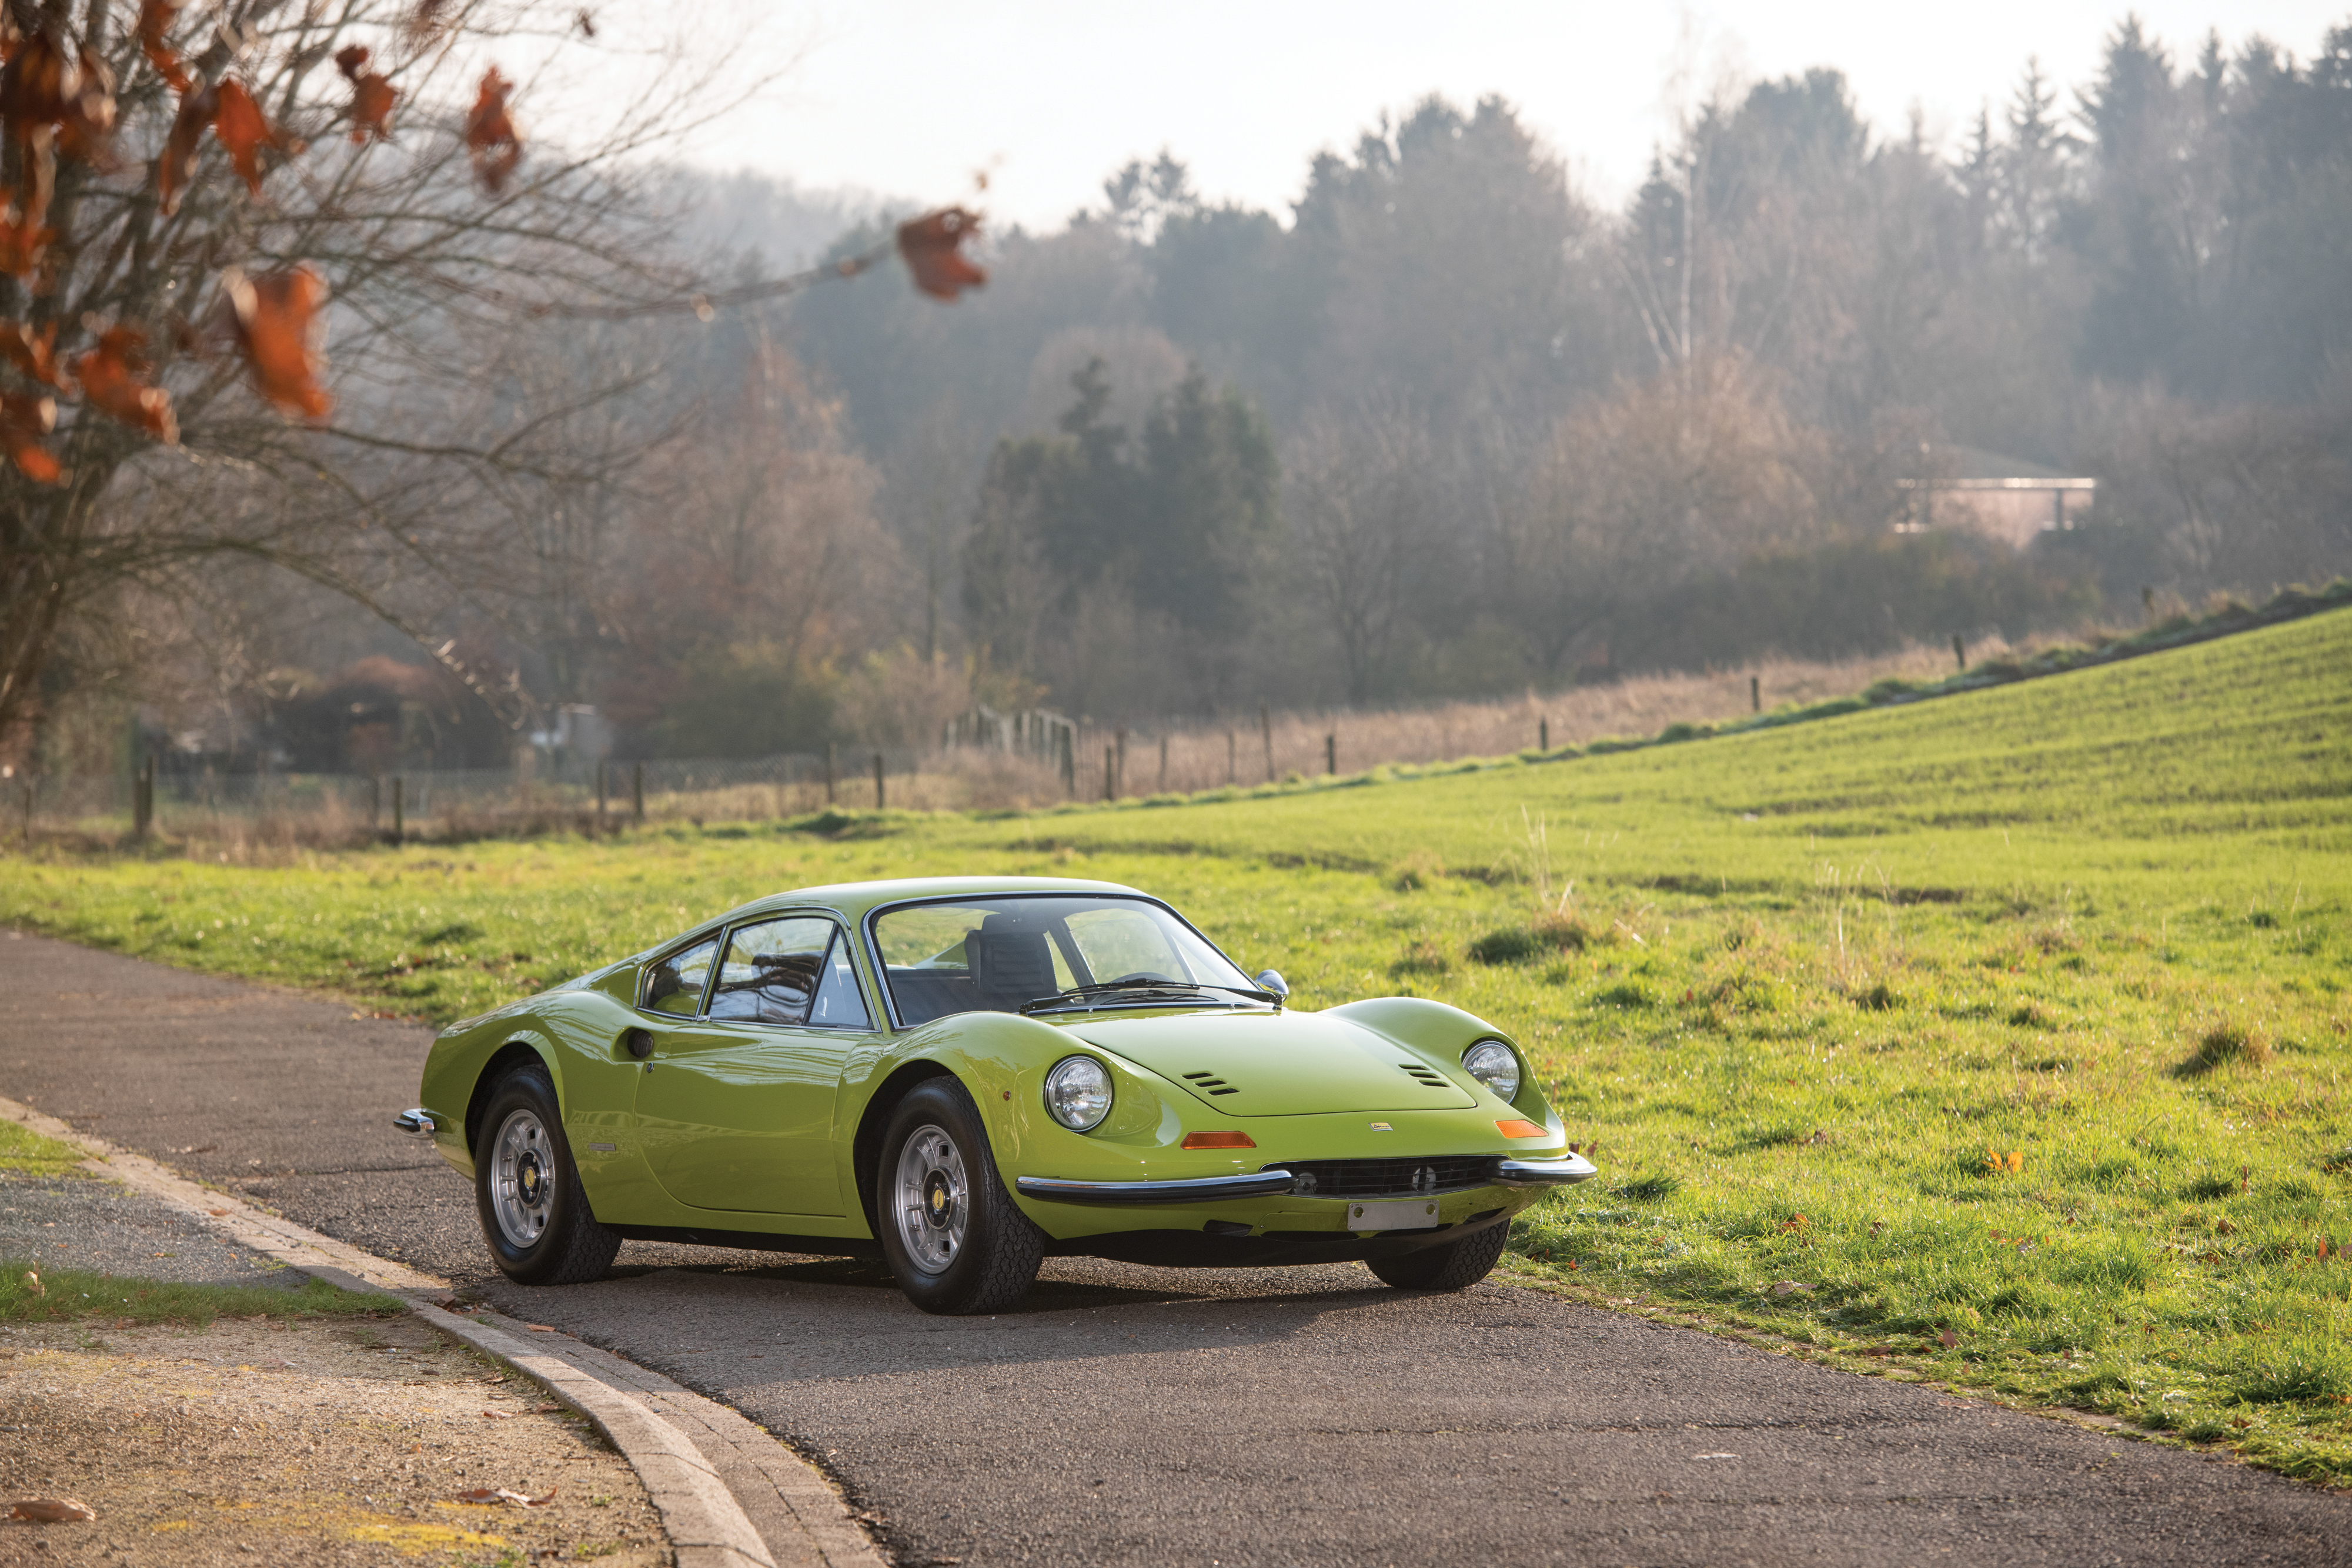 1970 Ferrari Dino 246 GT by Scaglietti (Credit - Dirk De Jager © 2018 Courtesy of RM Sotheby's) RM Sotheby's Paris